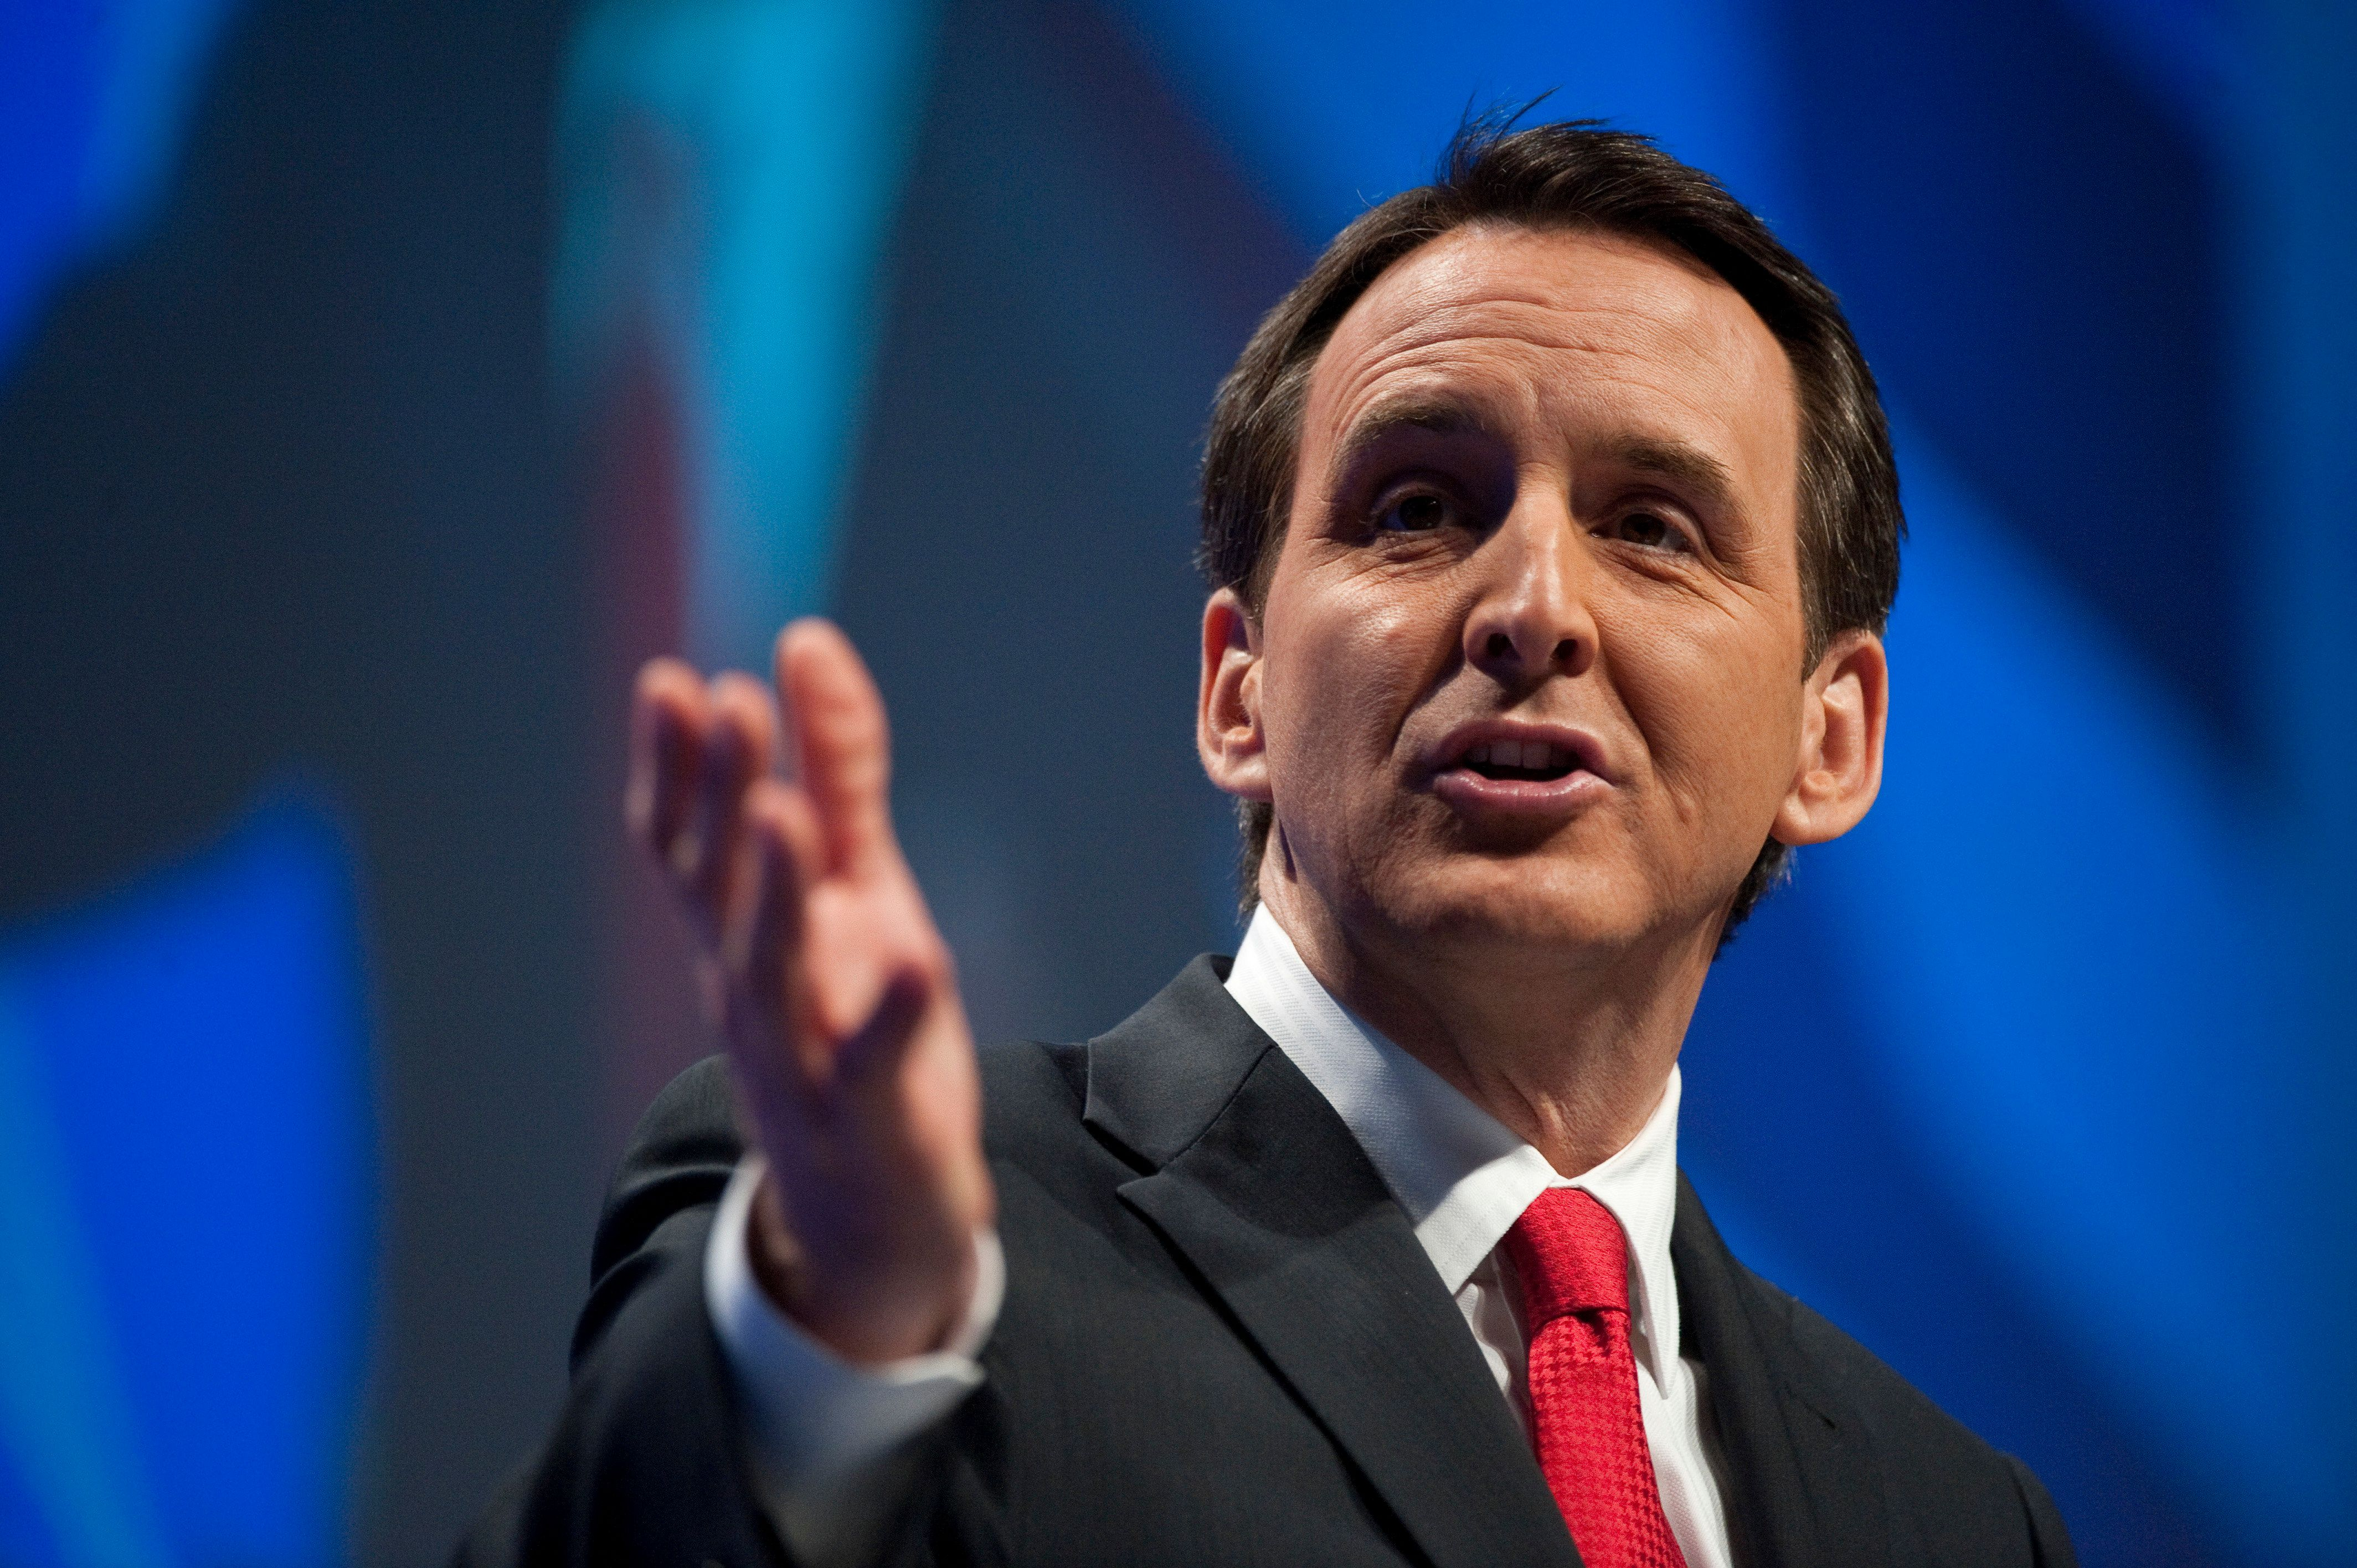 UNITED STATES Ð FEBRUARY 10: Former Gov. Tim Pawlenty, R-Minn., speaks to the CPAC Conference held by the American Conservative Union in Washington on Thursday, Feb. 10, 2010. (Photo By Bill Clark/Roll Call)